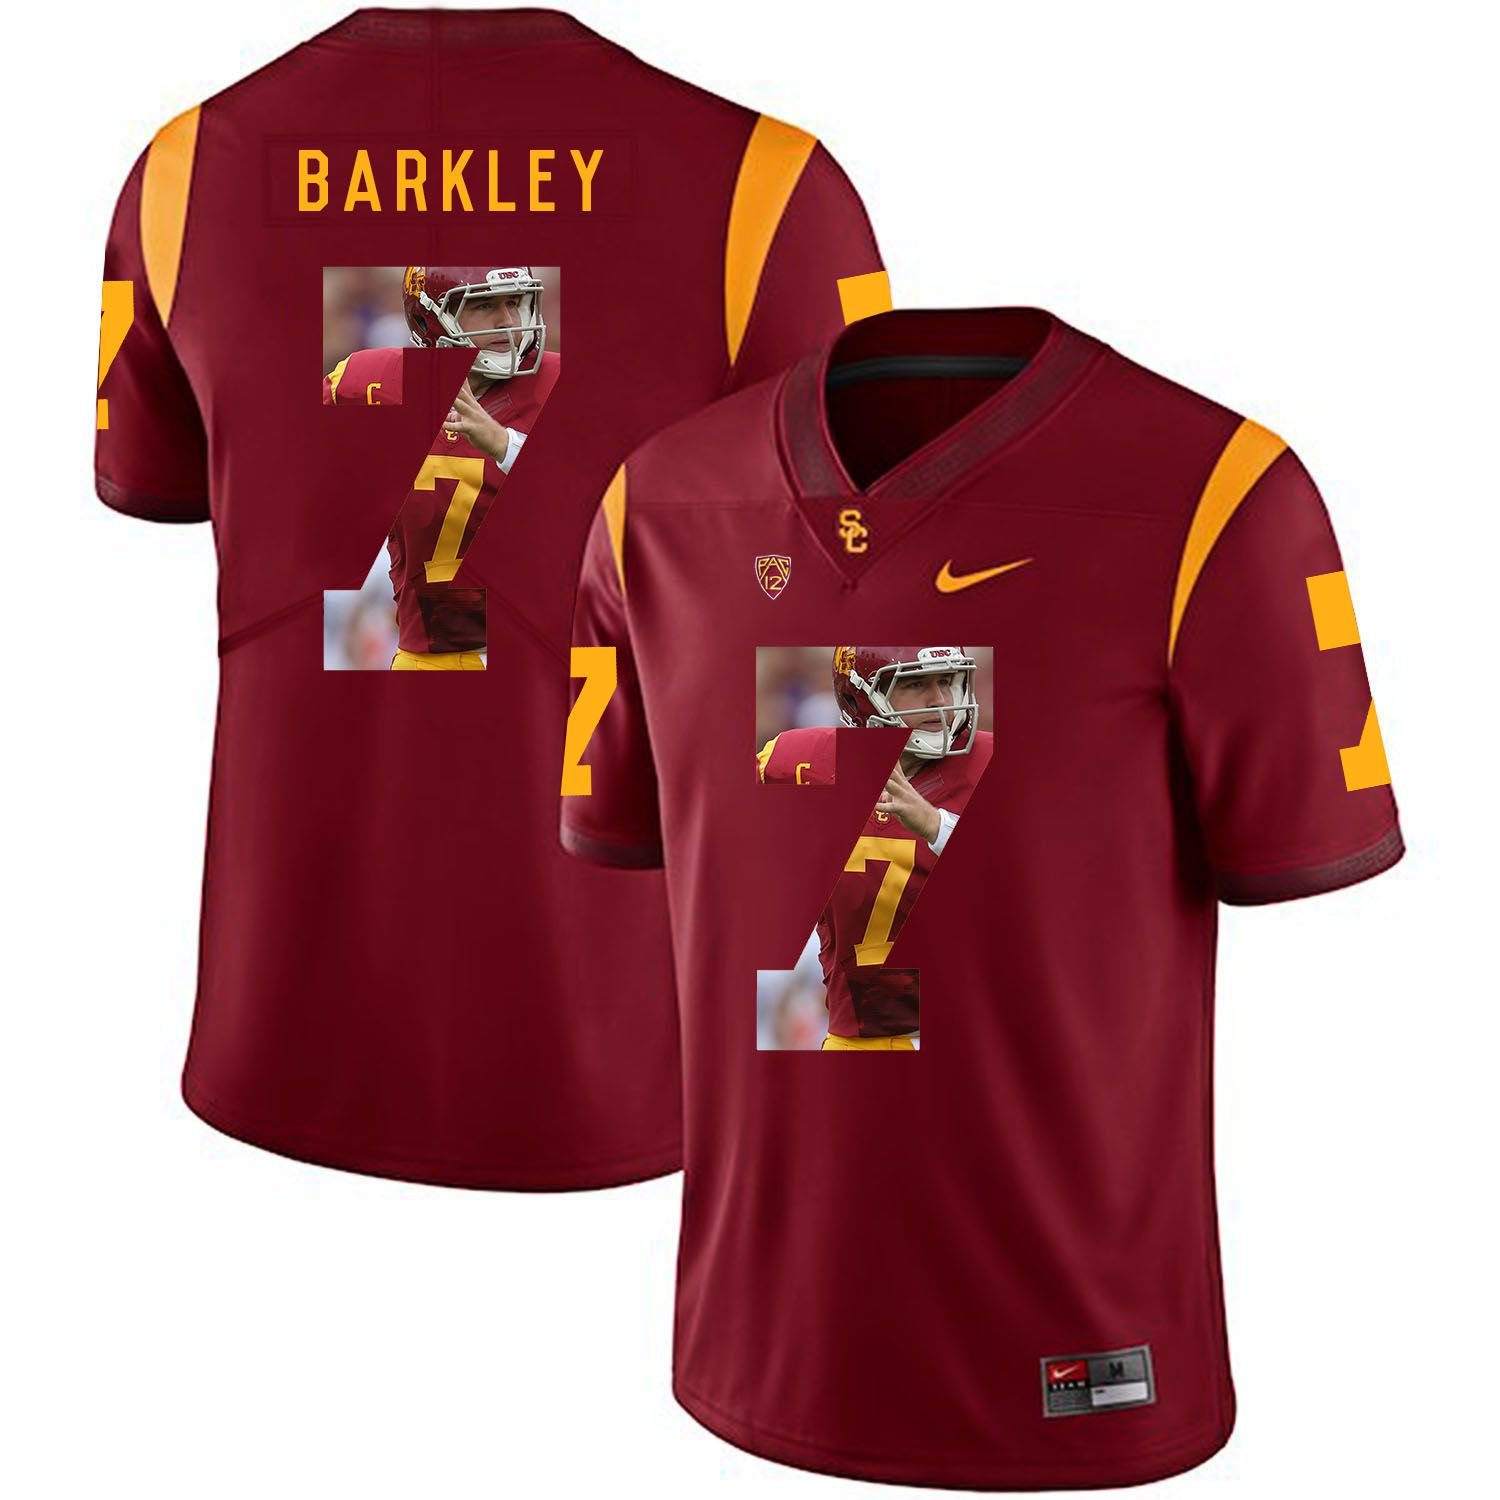 Men USC Trojans 7 Barkley Red Fashion Edition Customized NCAA Jerseys